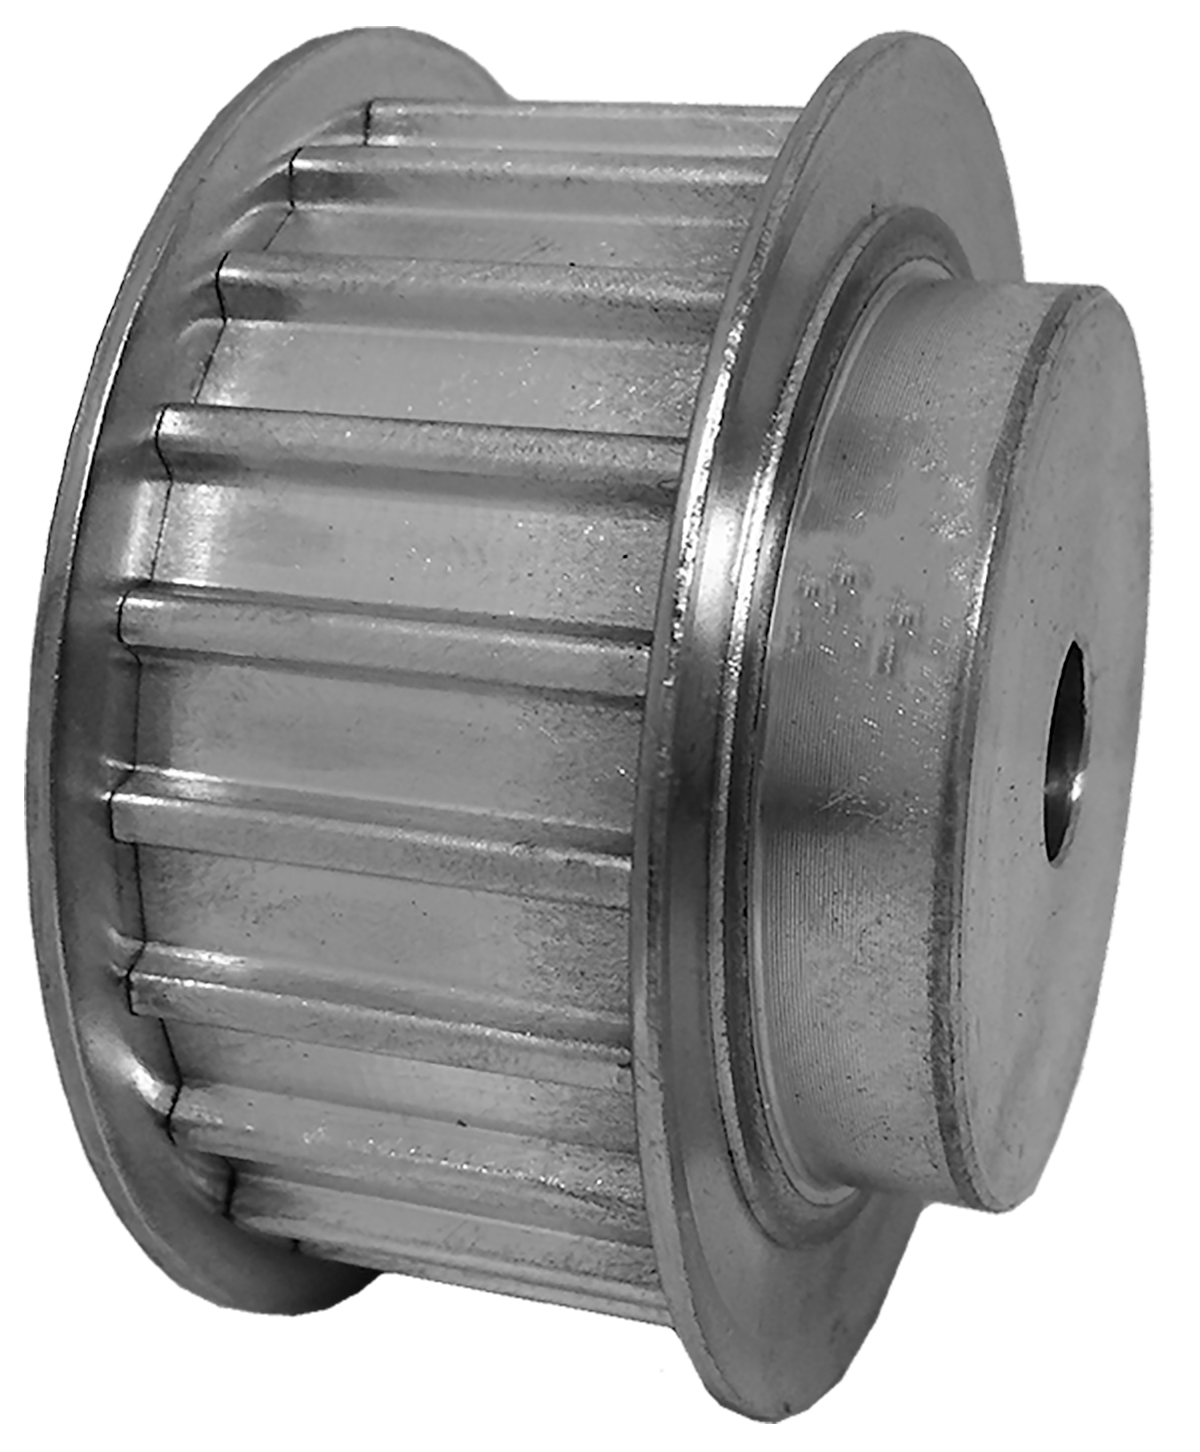 42AT10/22-2 - Aluminum Metric Pulleys